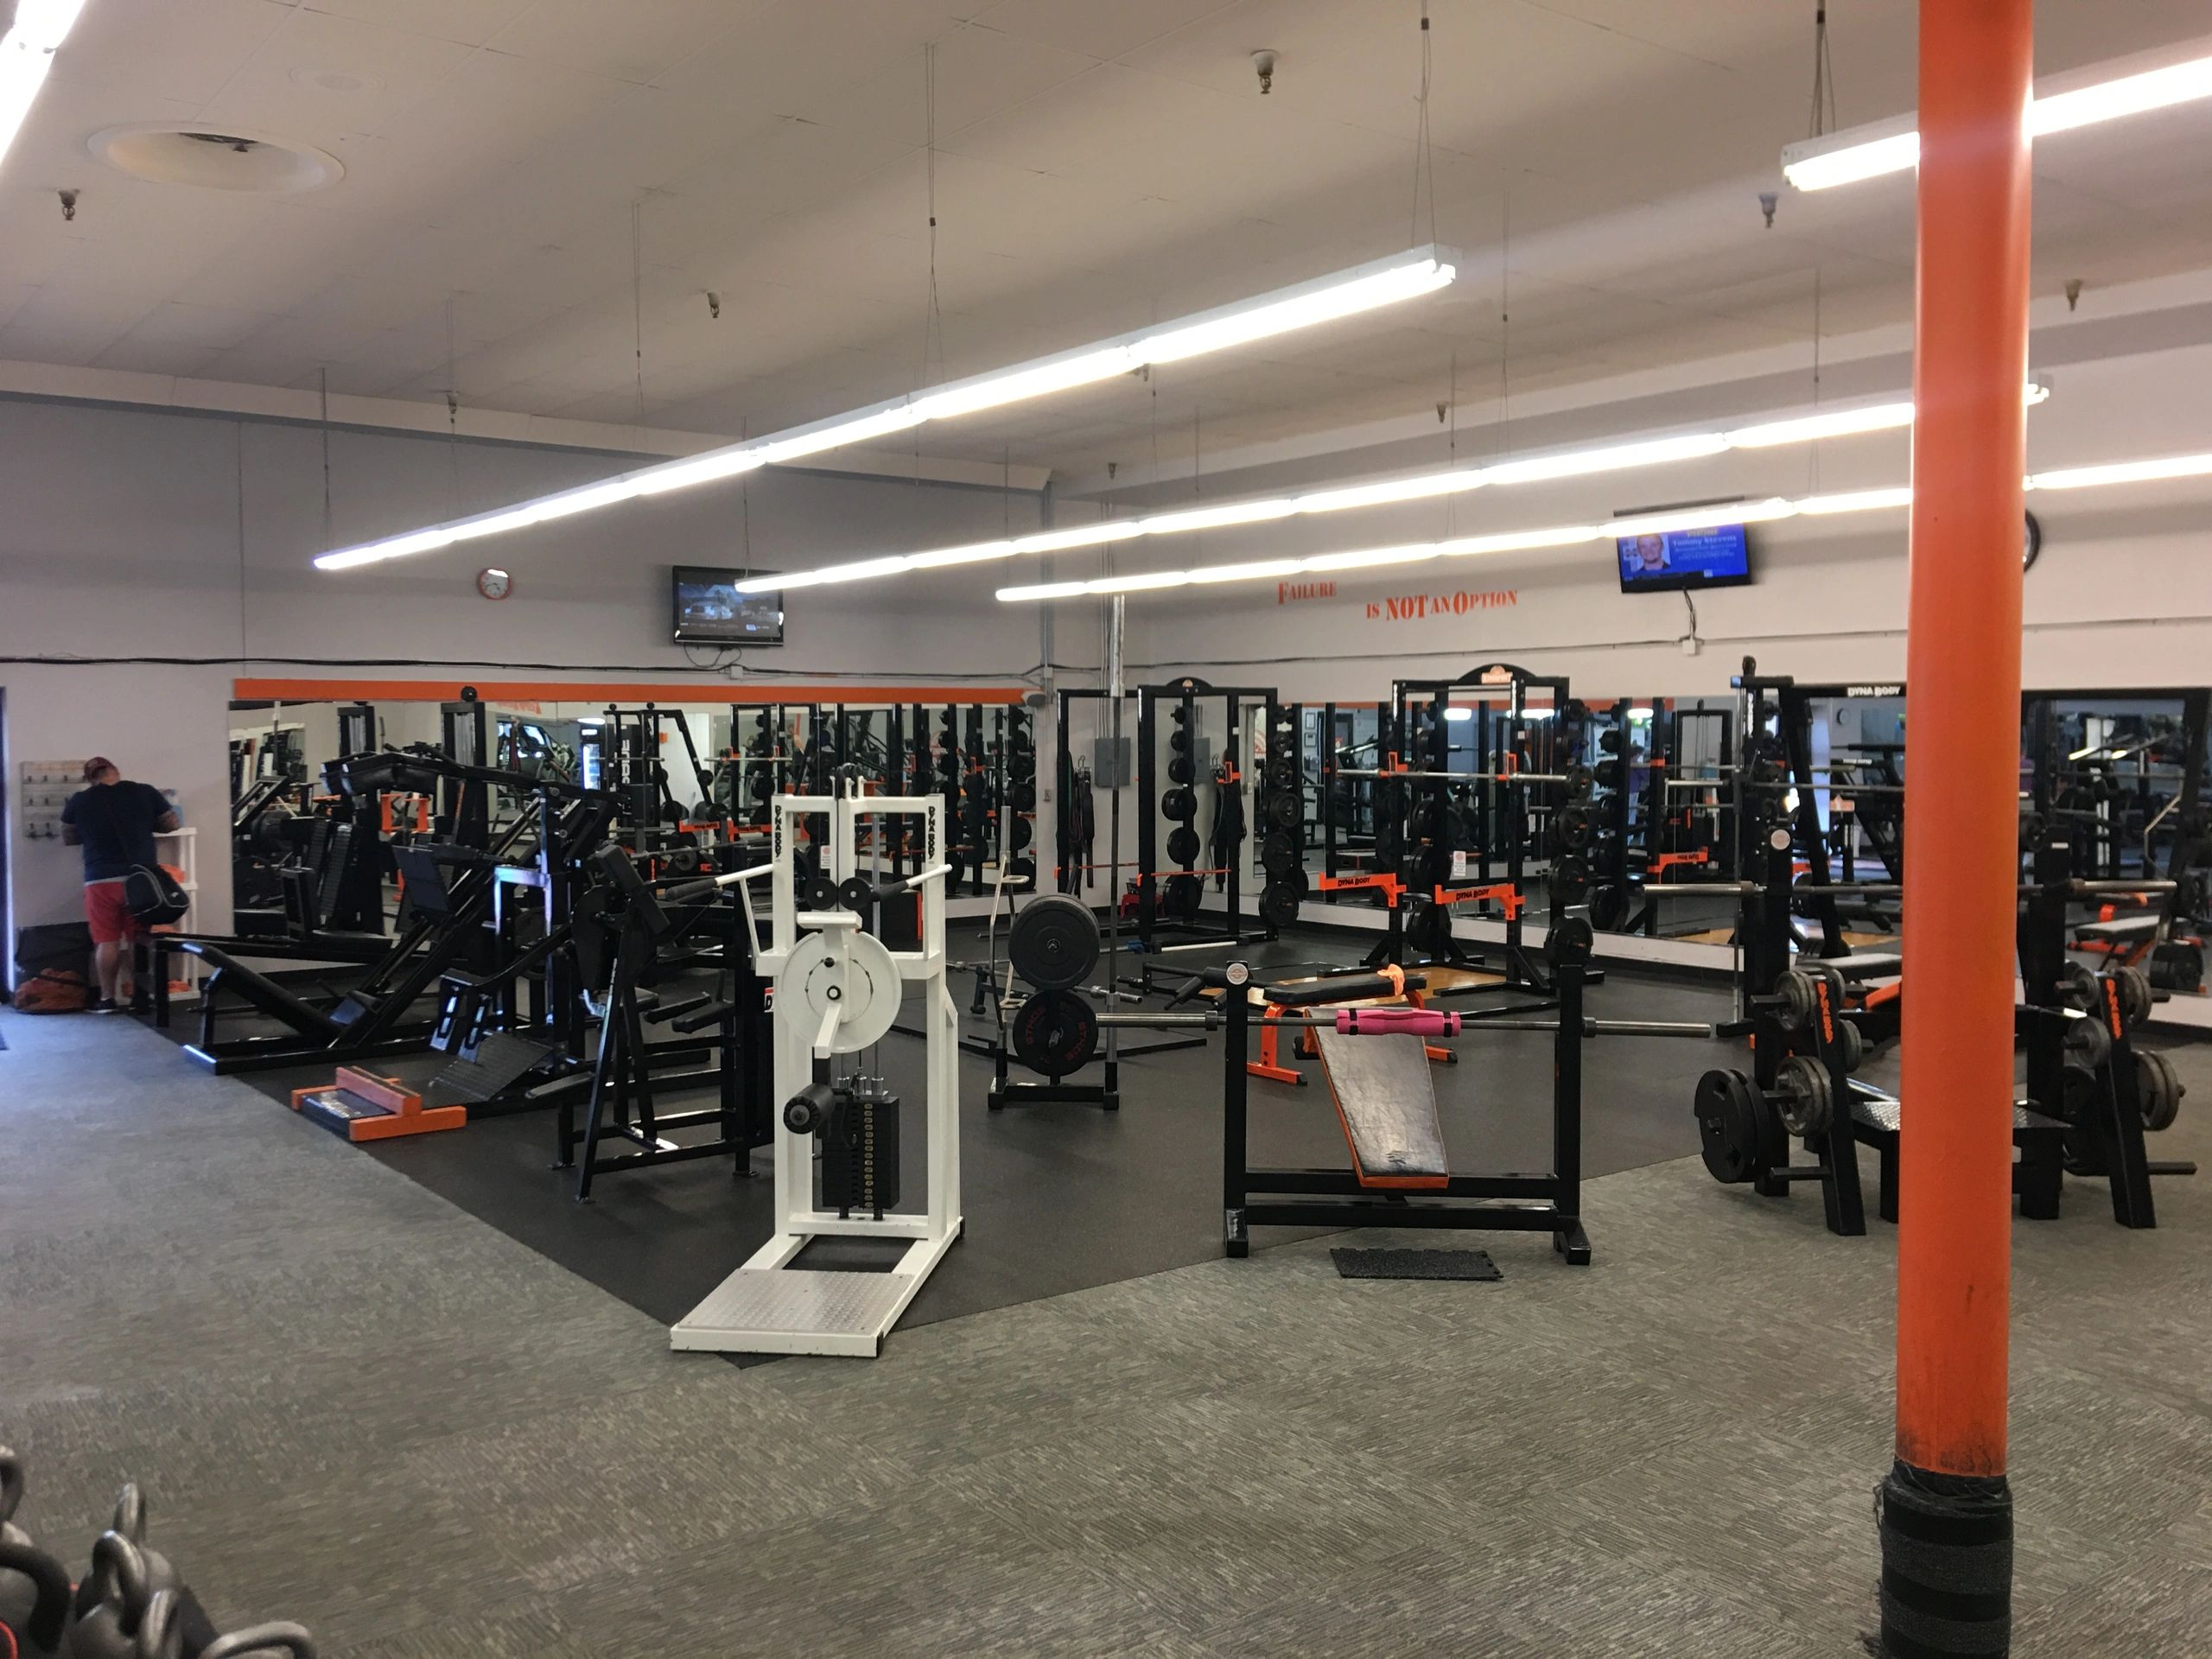 Kingsport Fitness has many kinds of weightlifting equipment